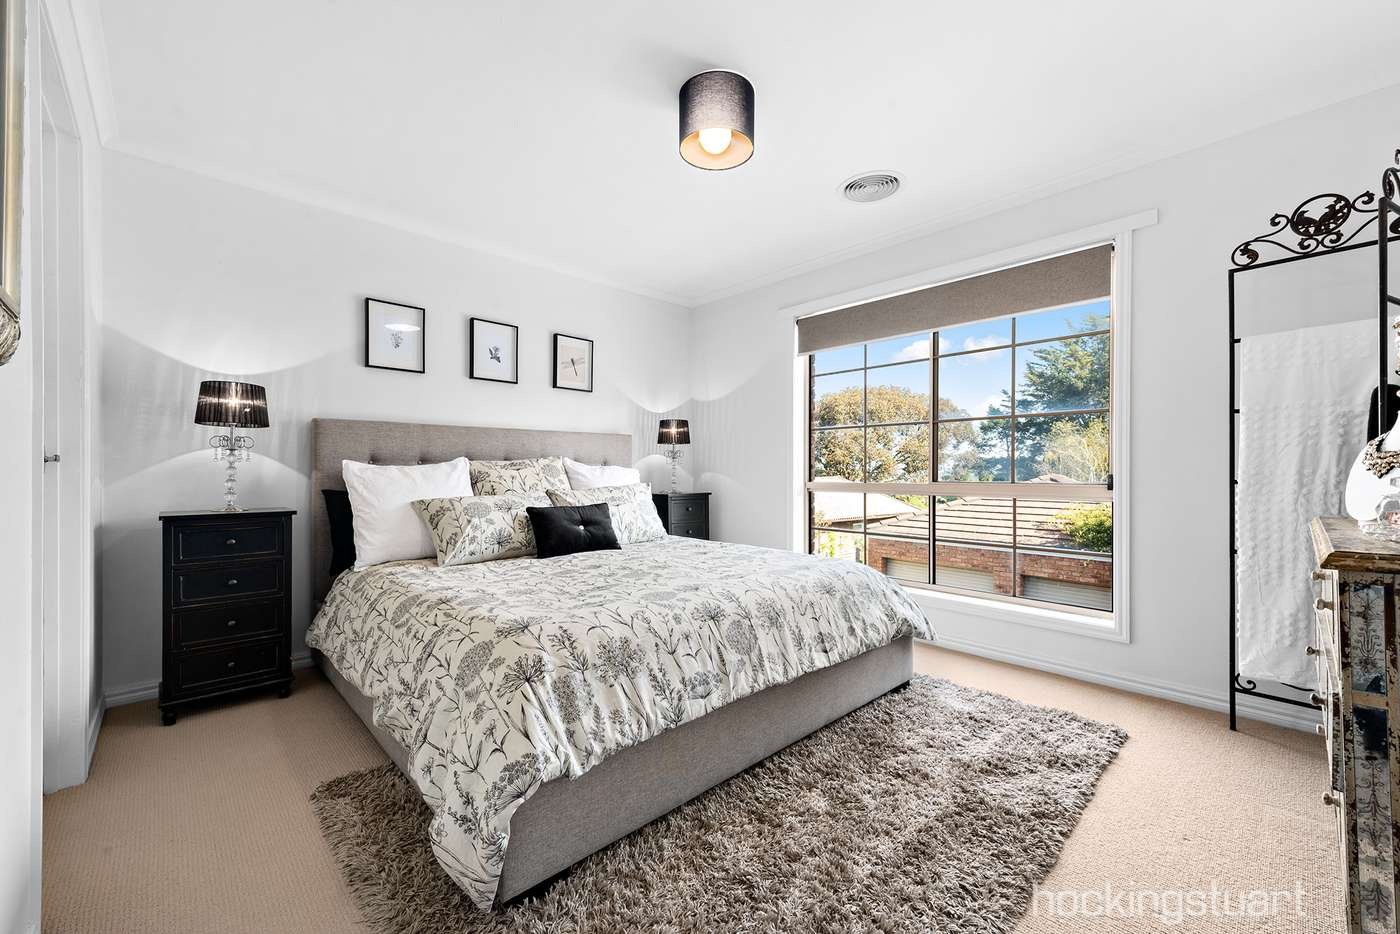 Seventh view of Homely house listing, 822 Chisholm Street, Black Hill VIC 3350